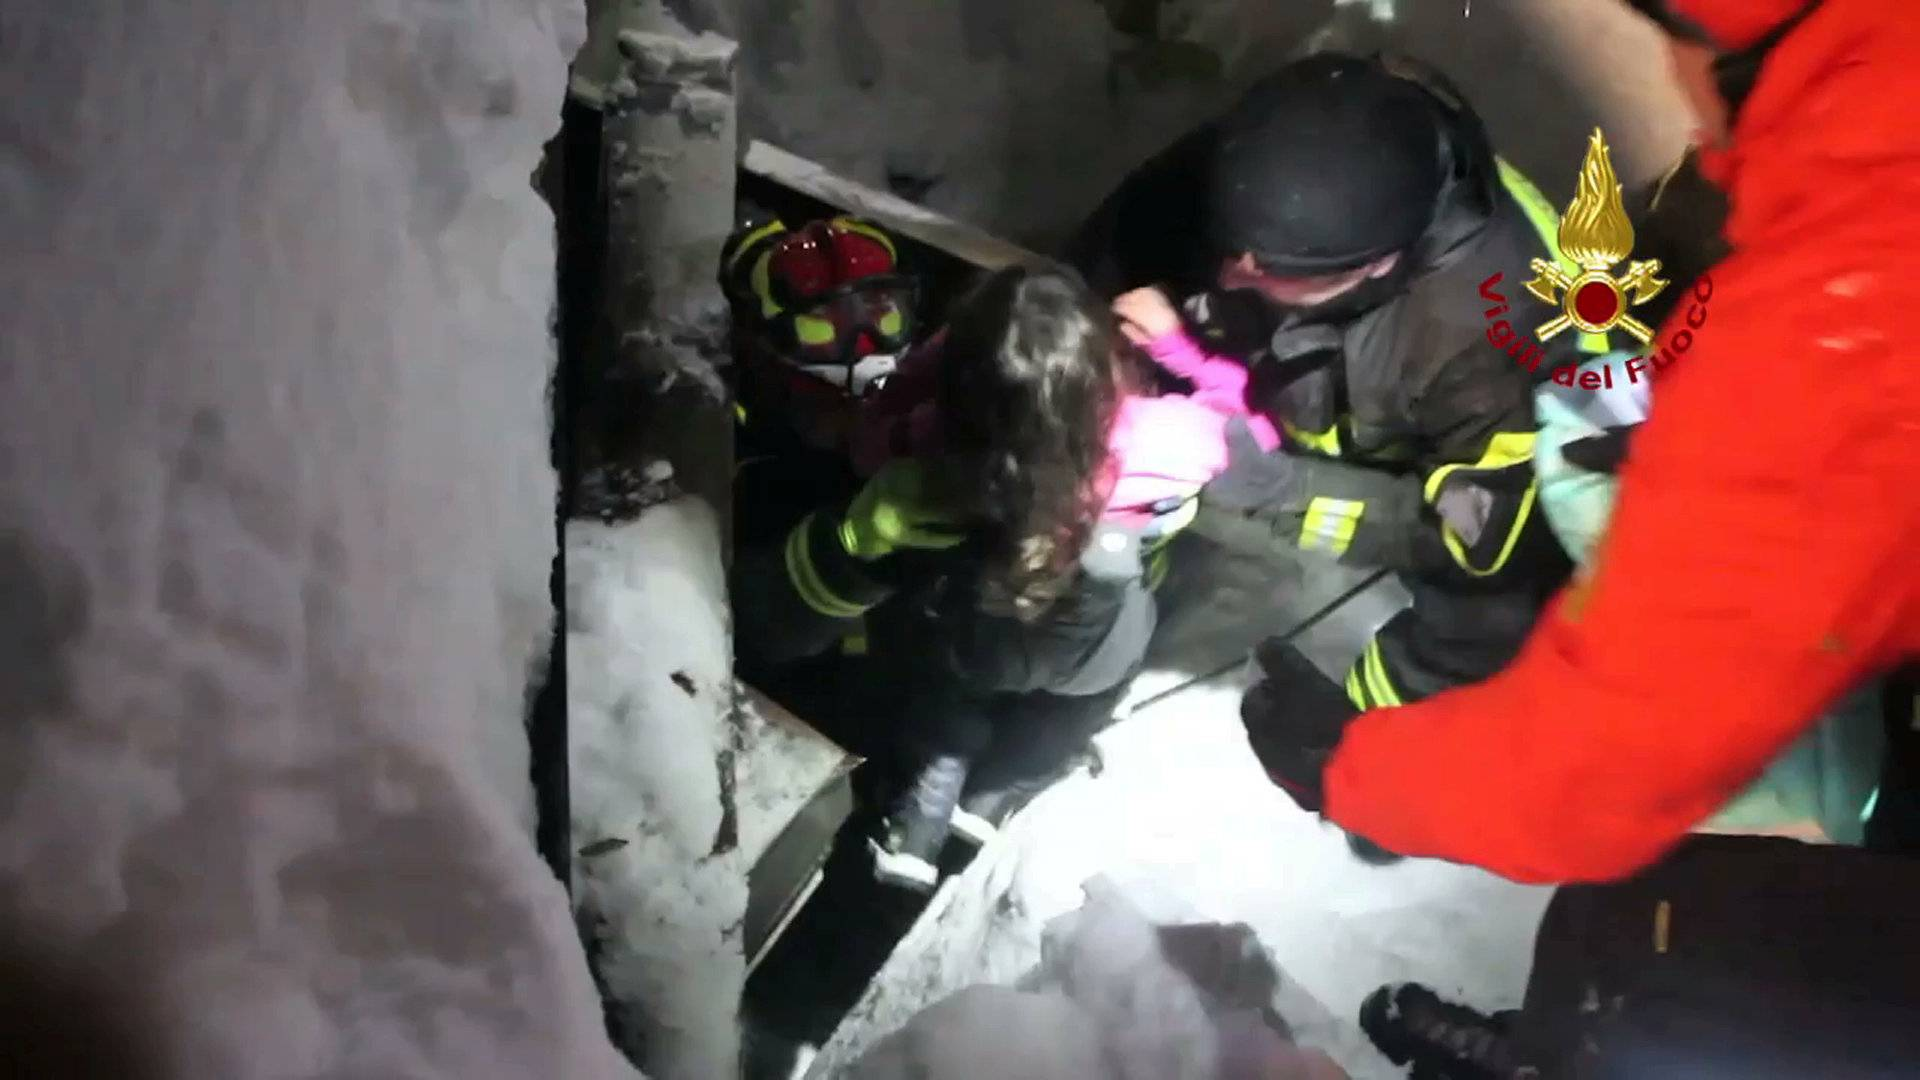 A still image taken from a video shows a survivor, rescued by Italian Firefighters, at the Hotel Rigopiano in Farindola, central Italy, which was hit by an avalanche